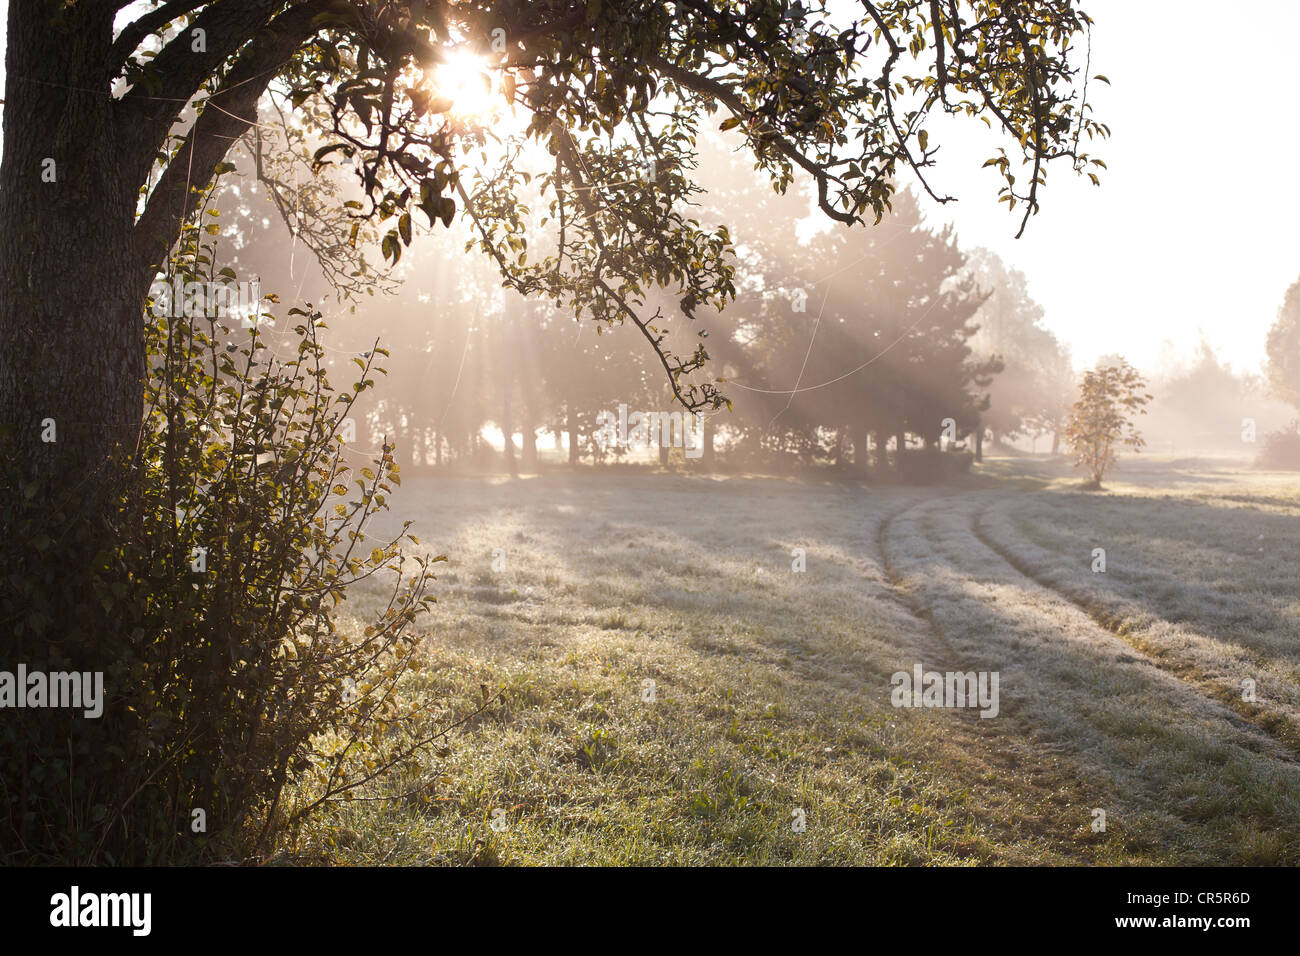 Morning fog on an autumn day, spider web covered in dew, Coswig, Saxony, Germany, Europe - Stock Image